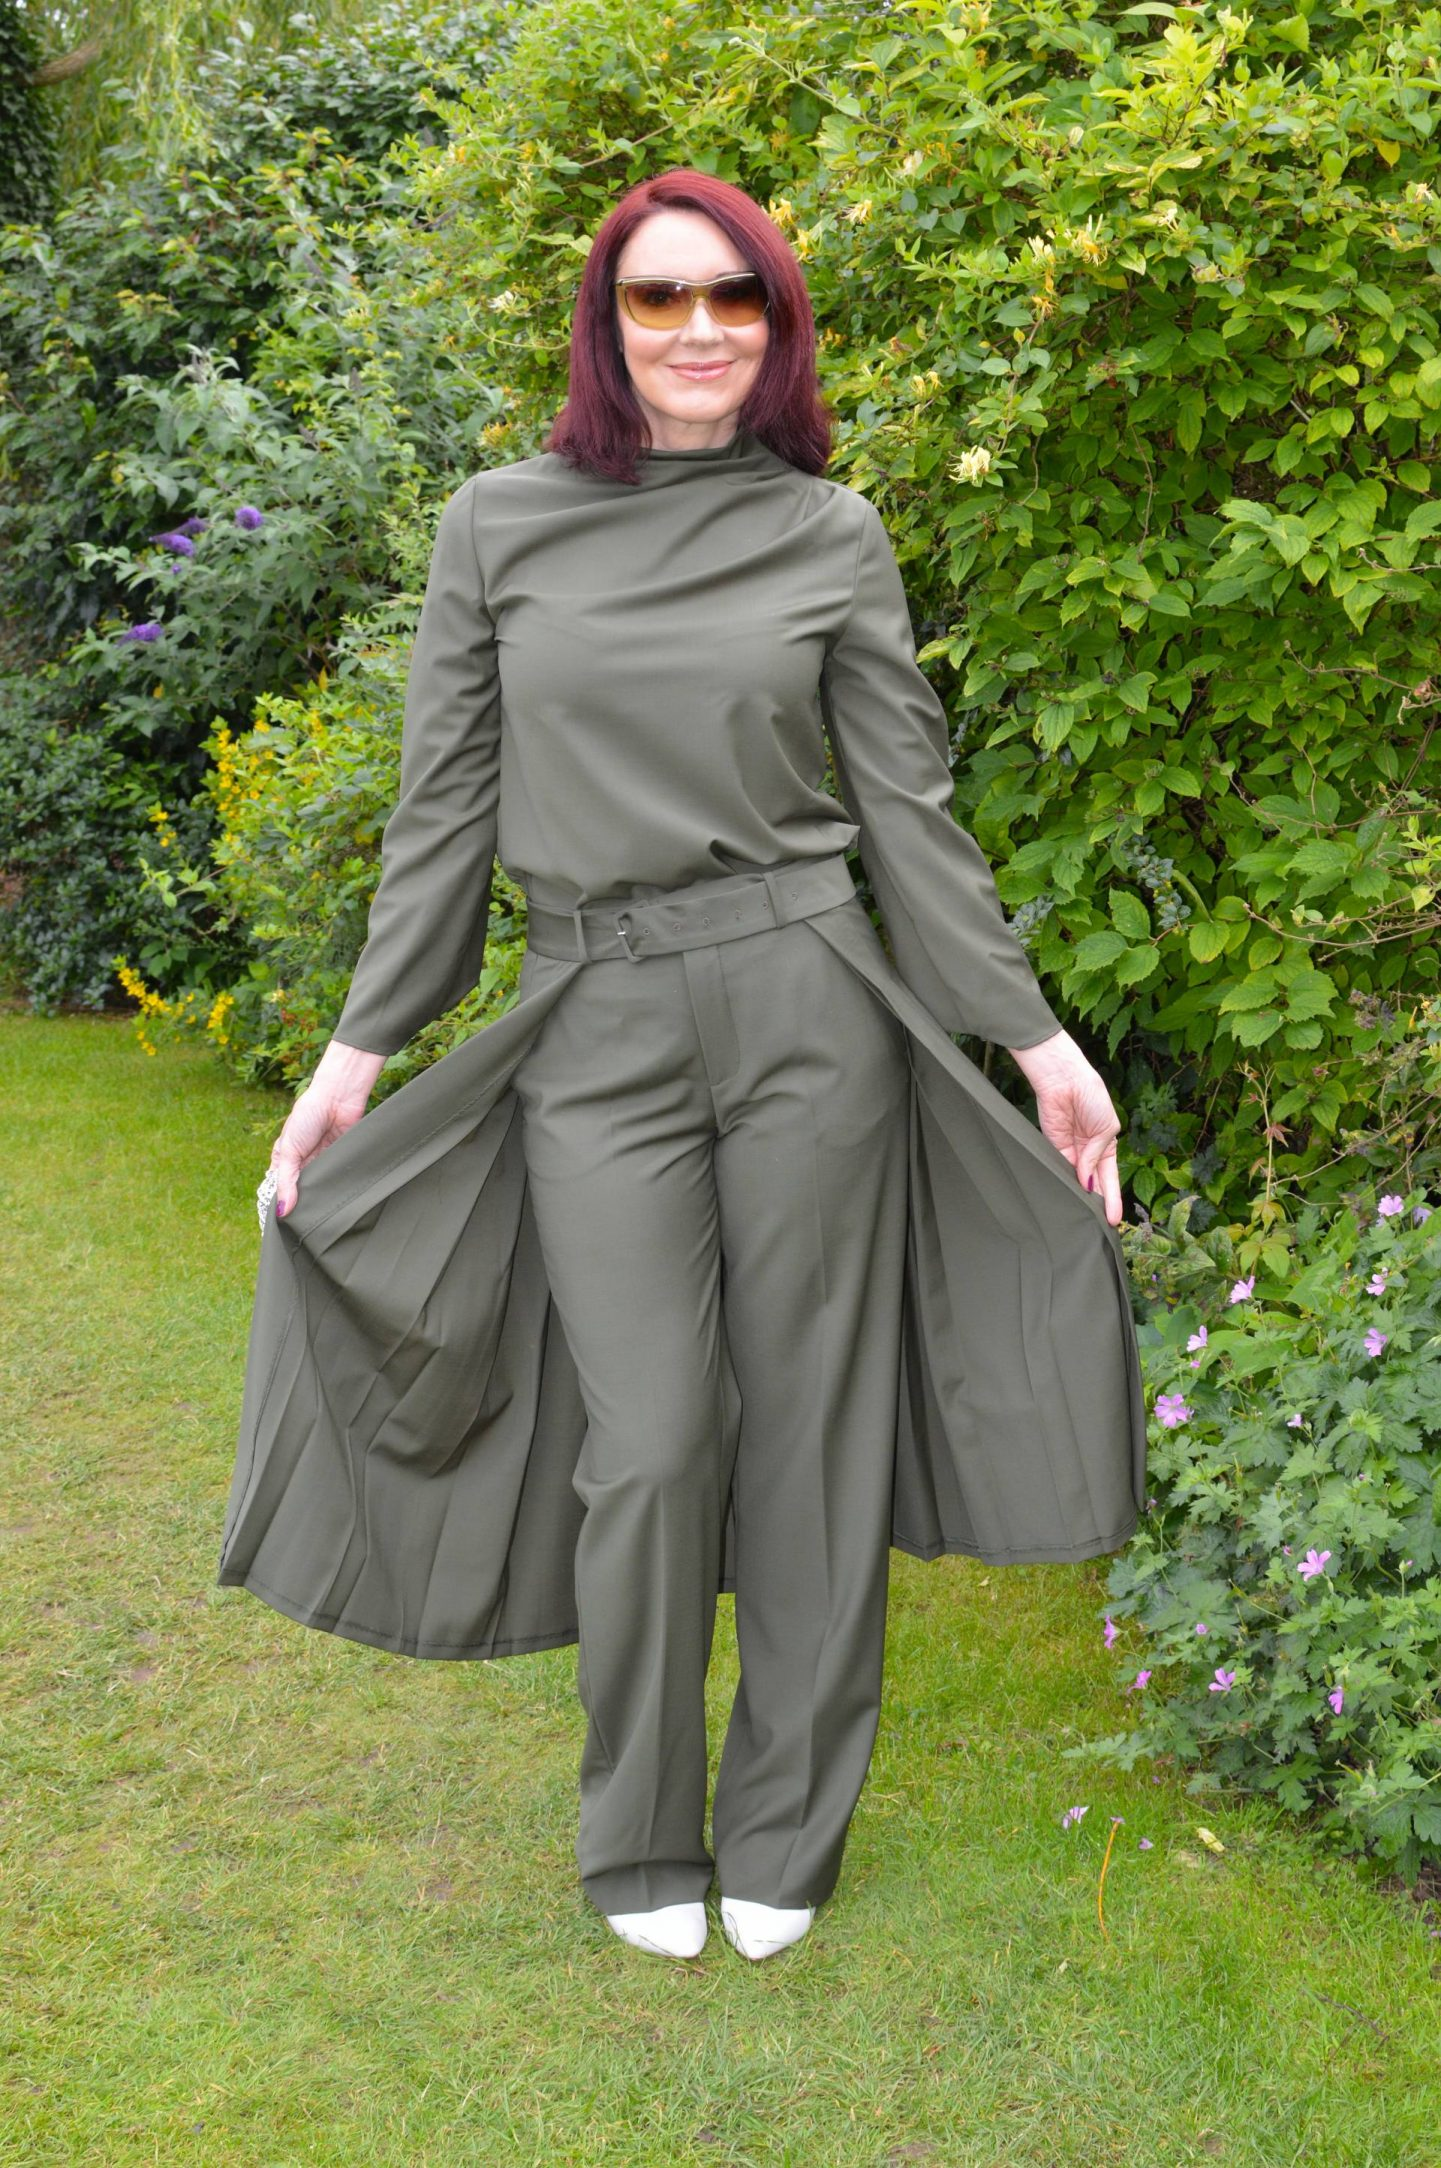 Zara Khaki top and trousers with half skirt